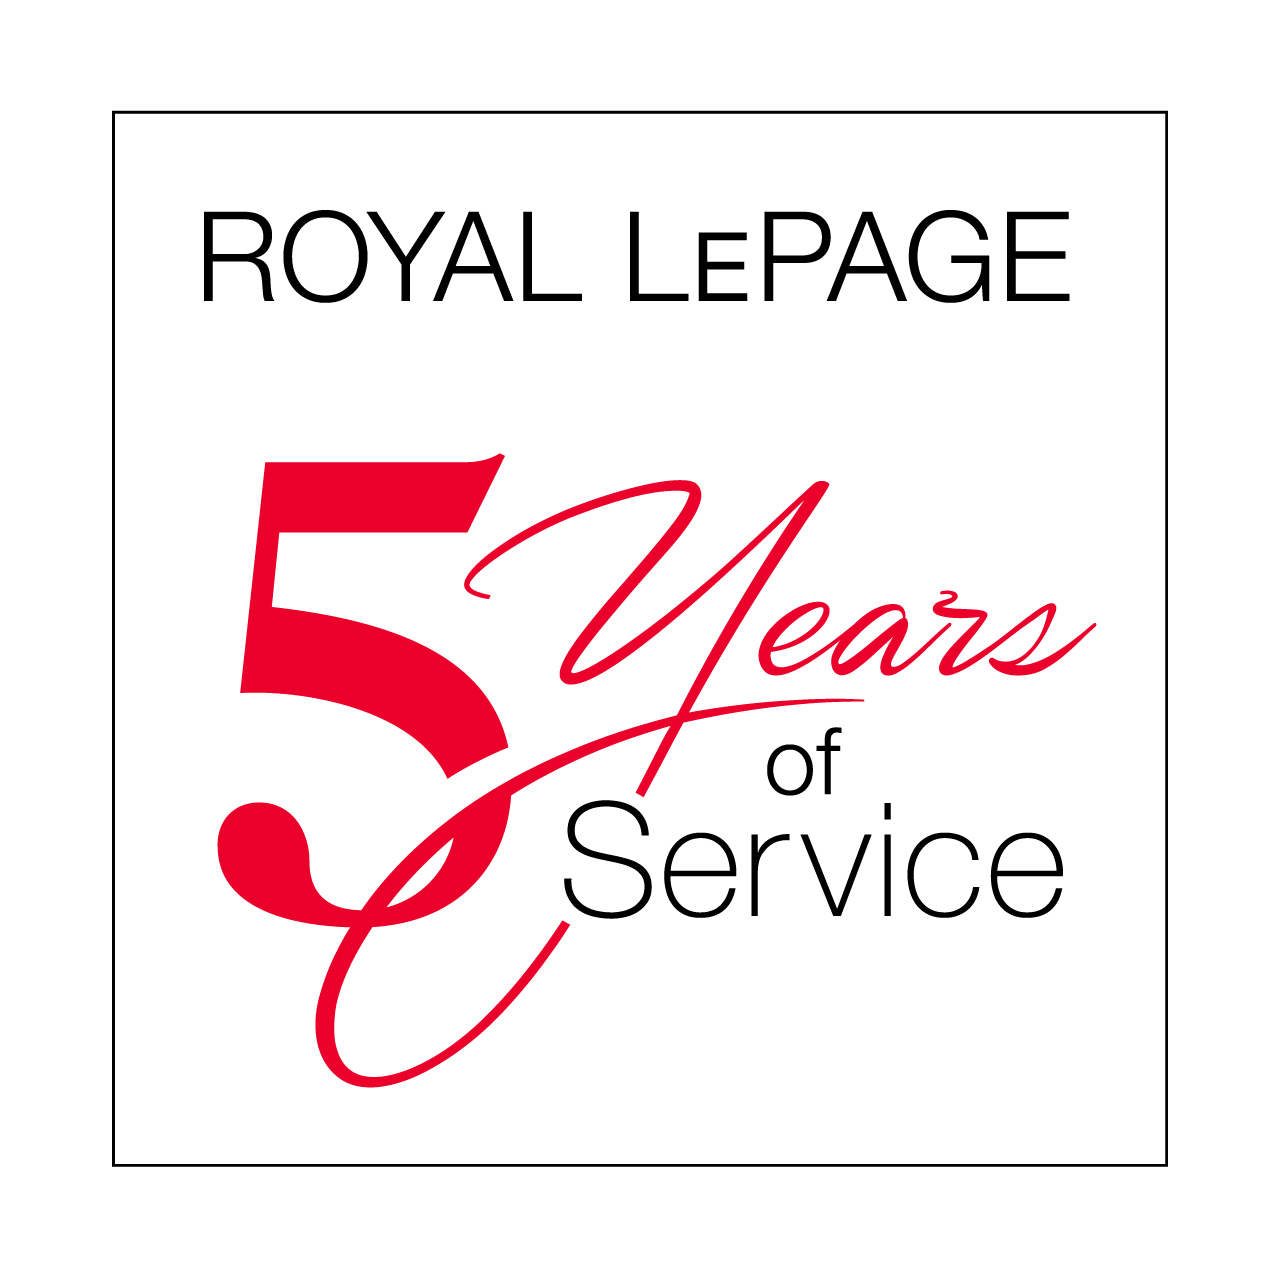 Years of Service - 5 Years